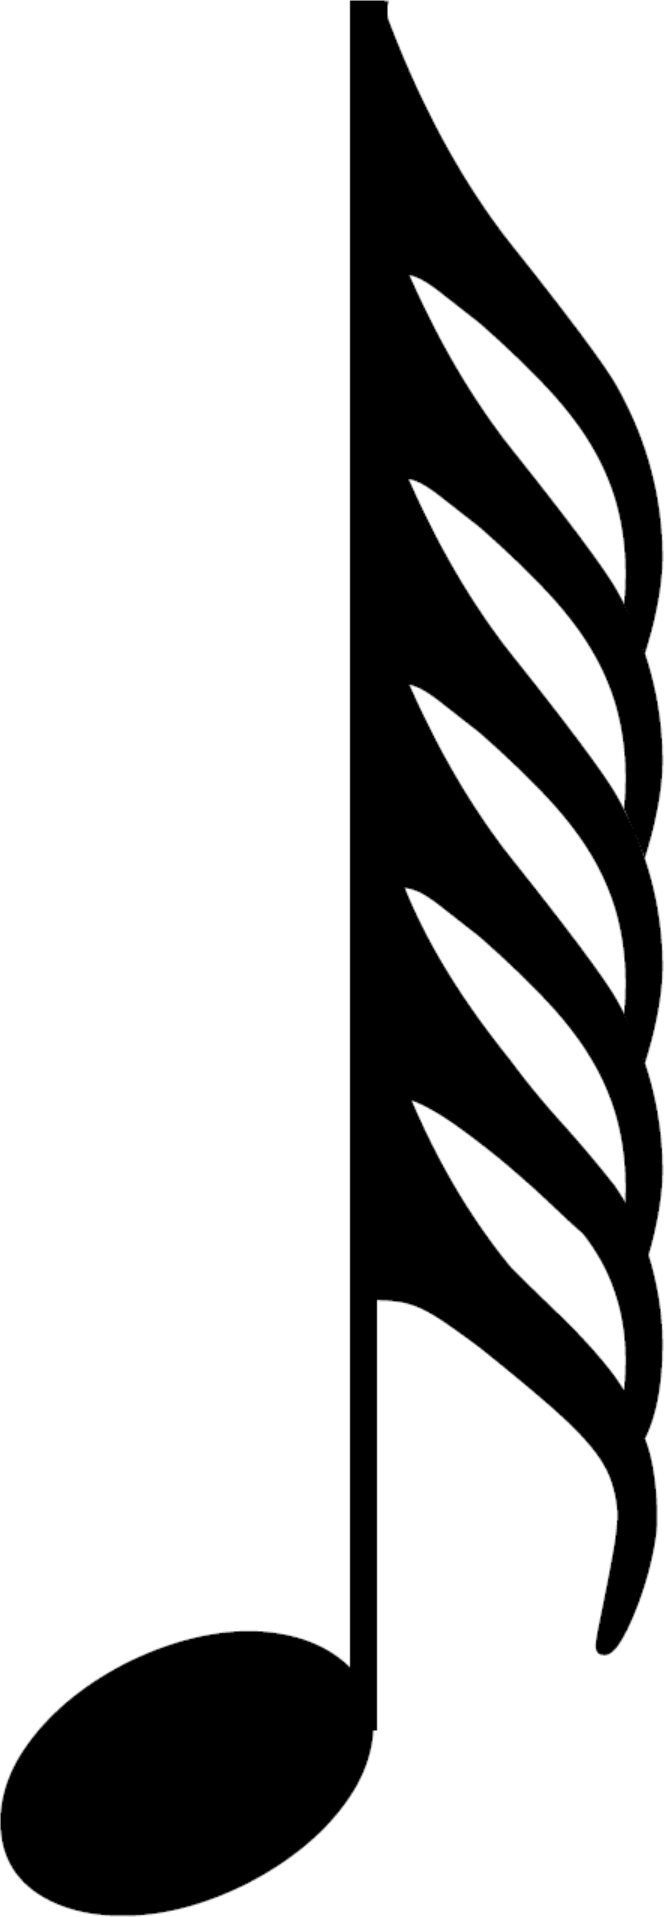 An HD two hundred and fifty sixth note, also called a demisemihemidemisemiquaver; a musical symbol and musical note value.